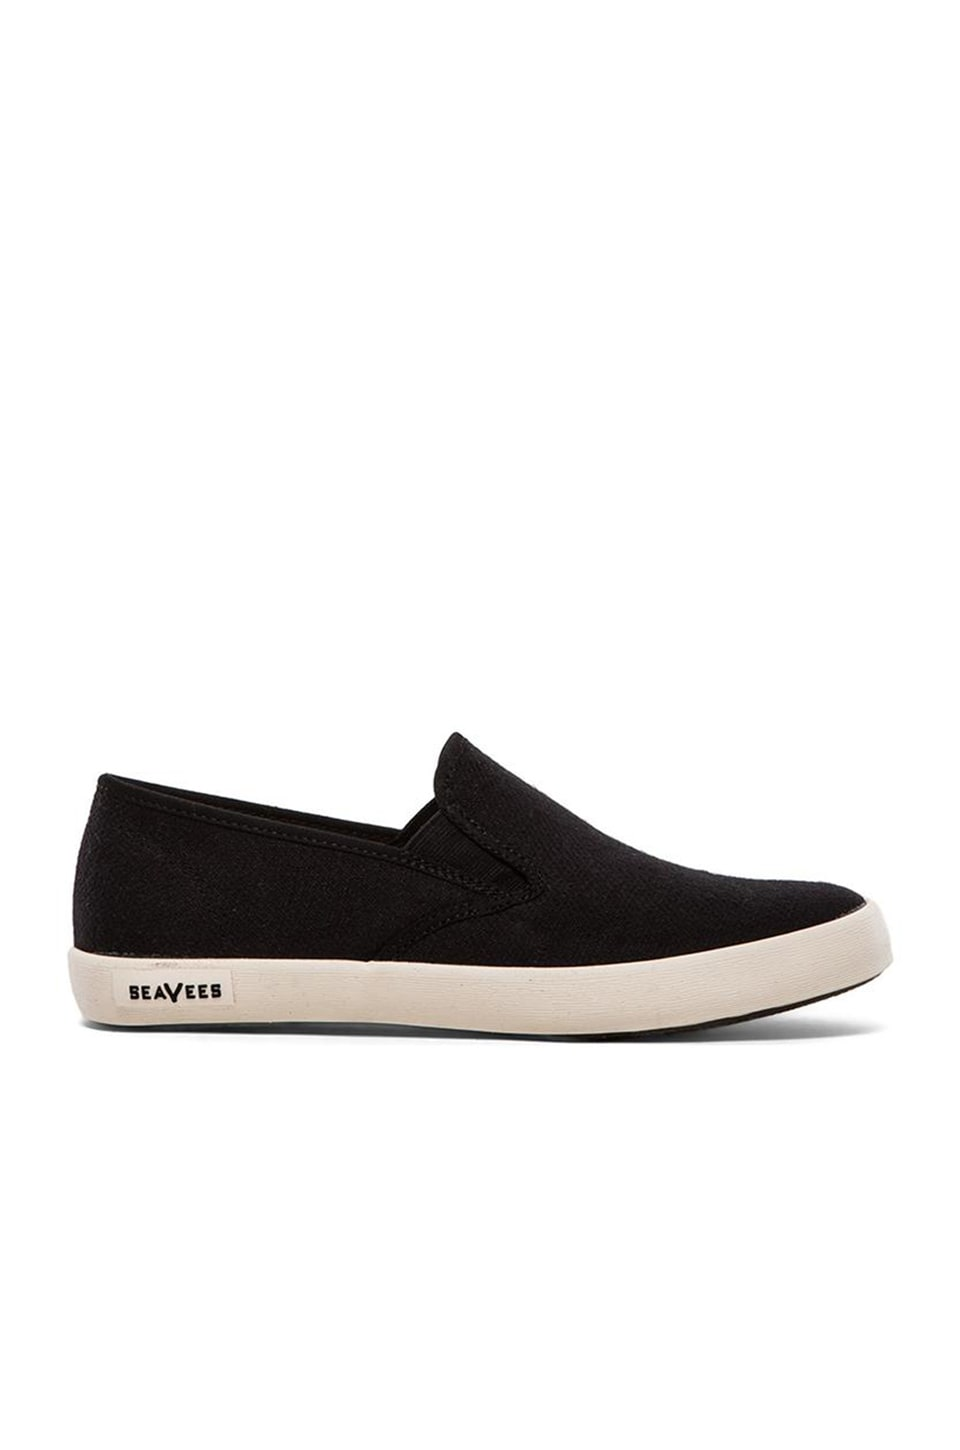 SeaVees 02/64 Baja Slip On Hemp in Black